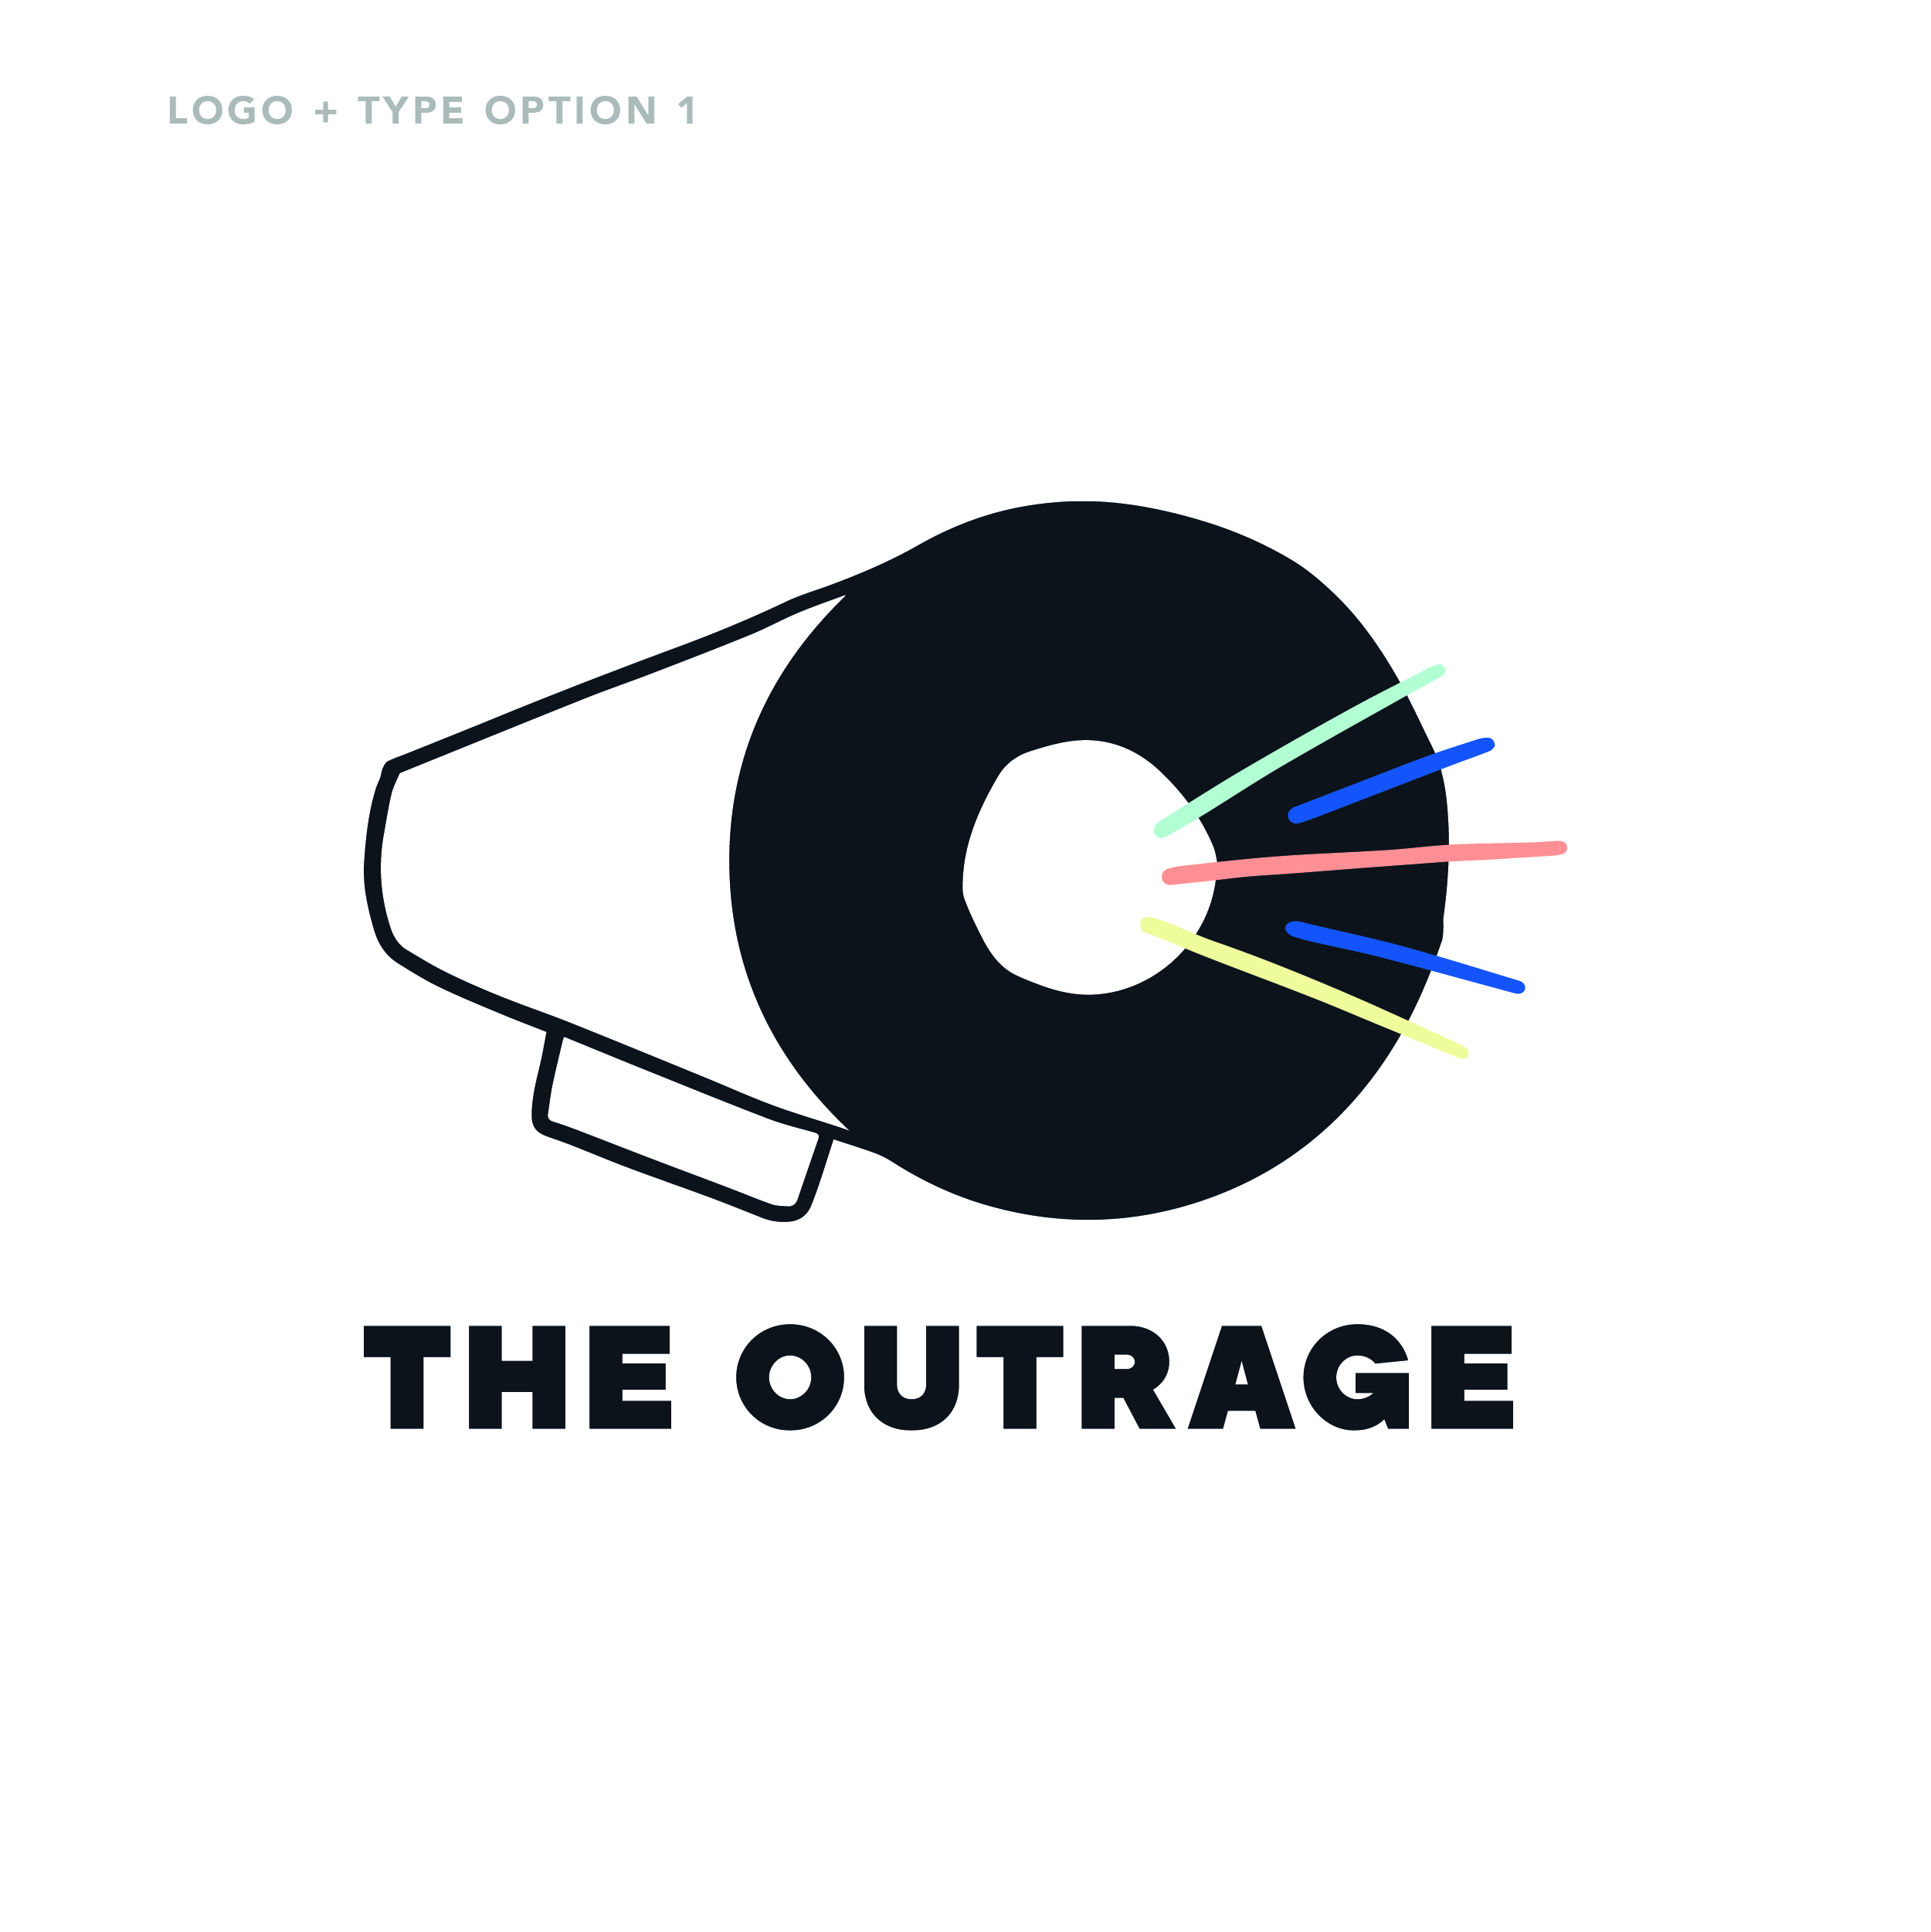 The Outrage_Logo_Logo + Type Option 1.jpg